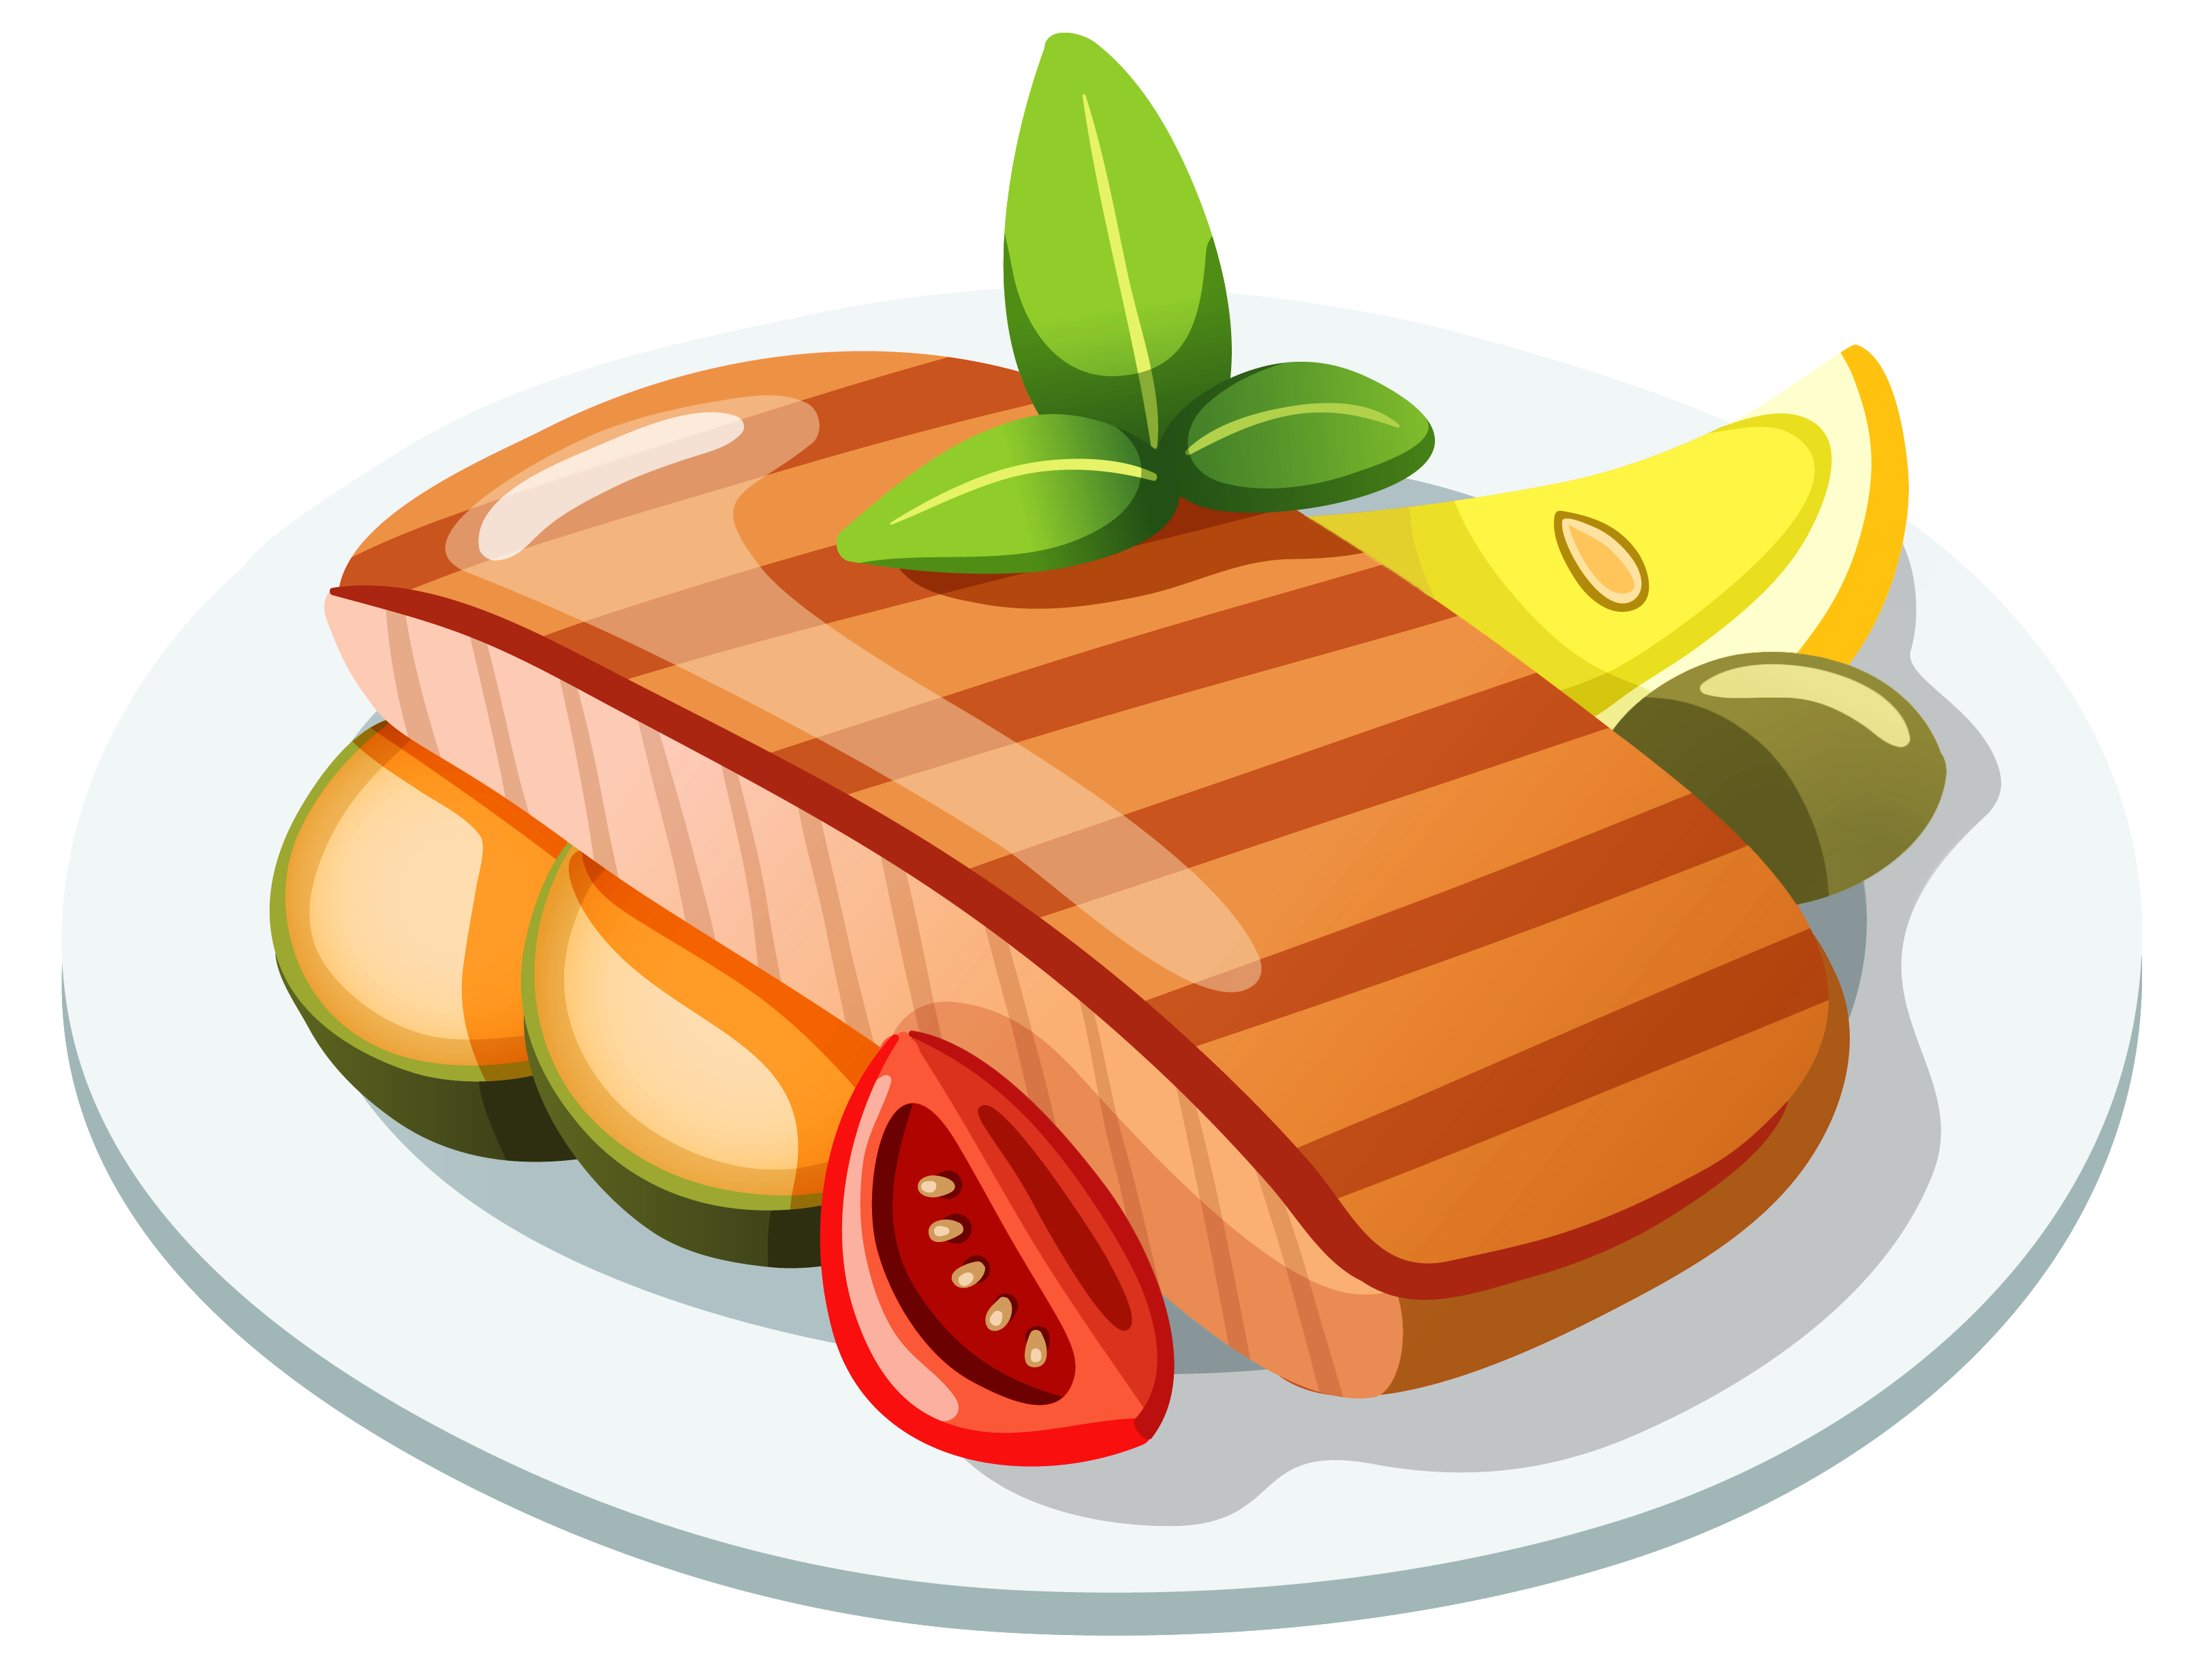 Grilled fish clipart png free stock Food Icon - Grilled Steak PNG Clipart 3232*2466 transprent Png Free ... png free stock